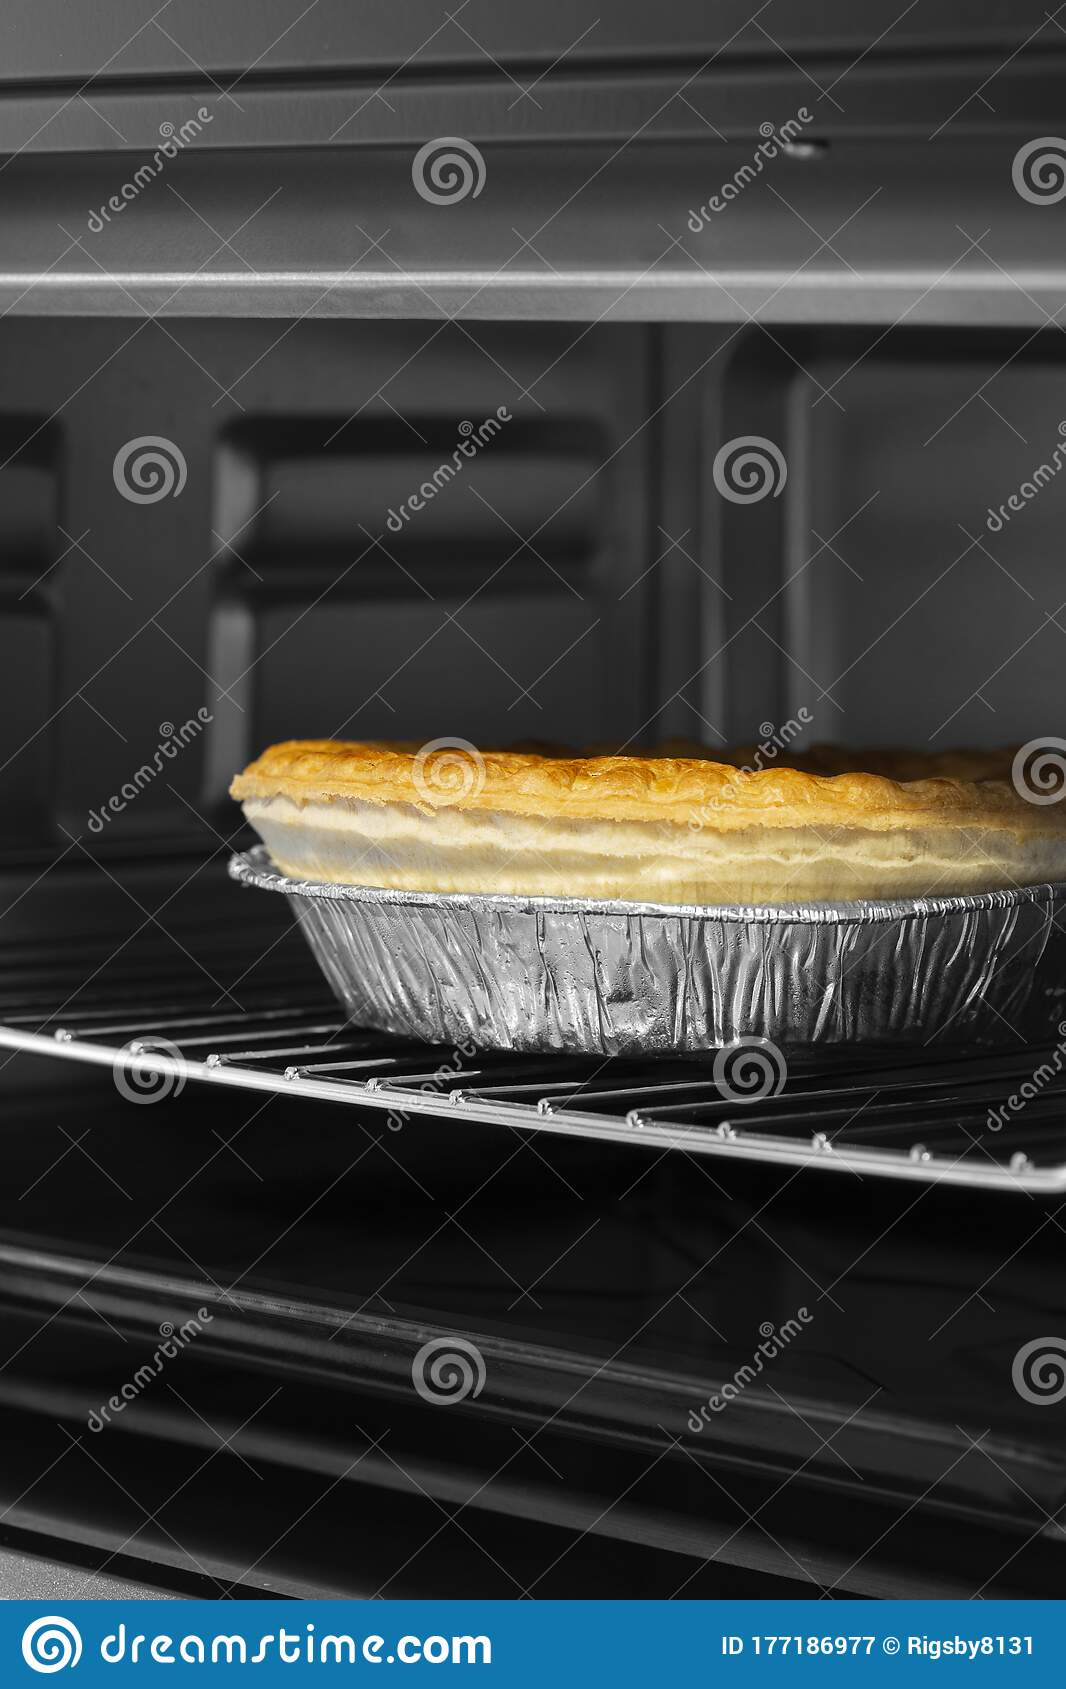 Steak And Ale Pie Cooked In An Electric Oven Grill In Foil ...